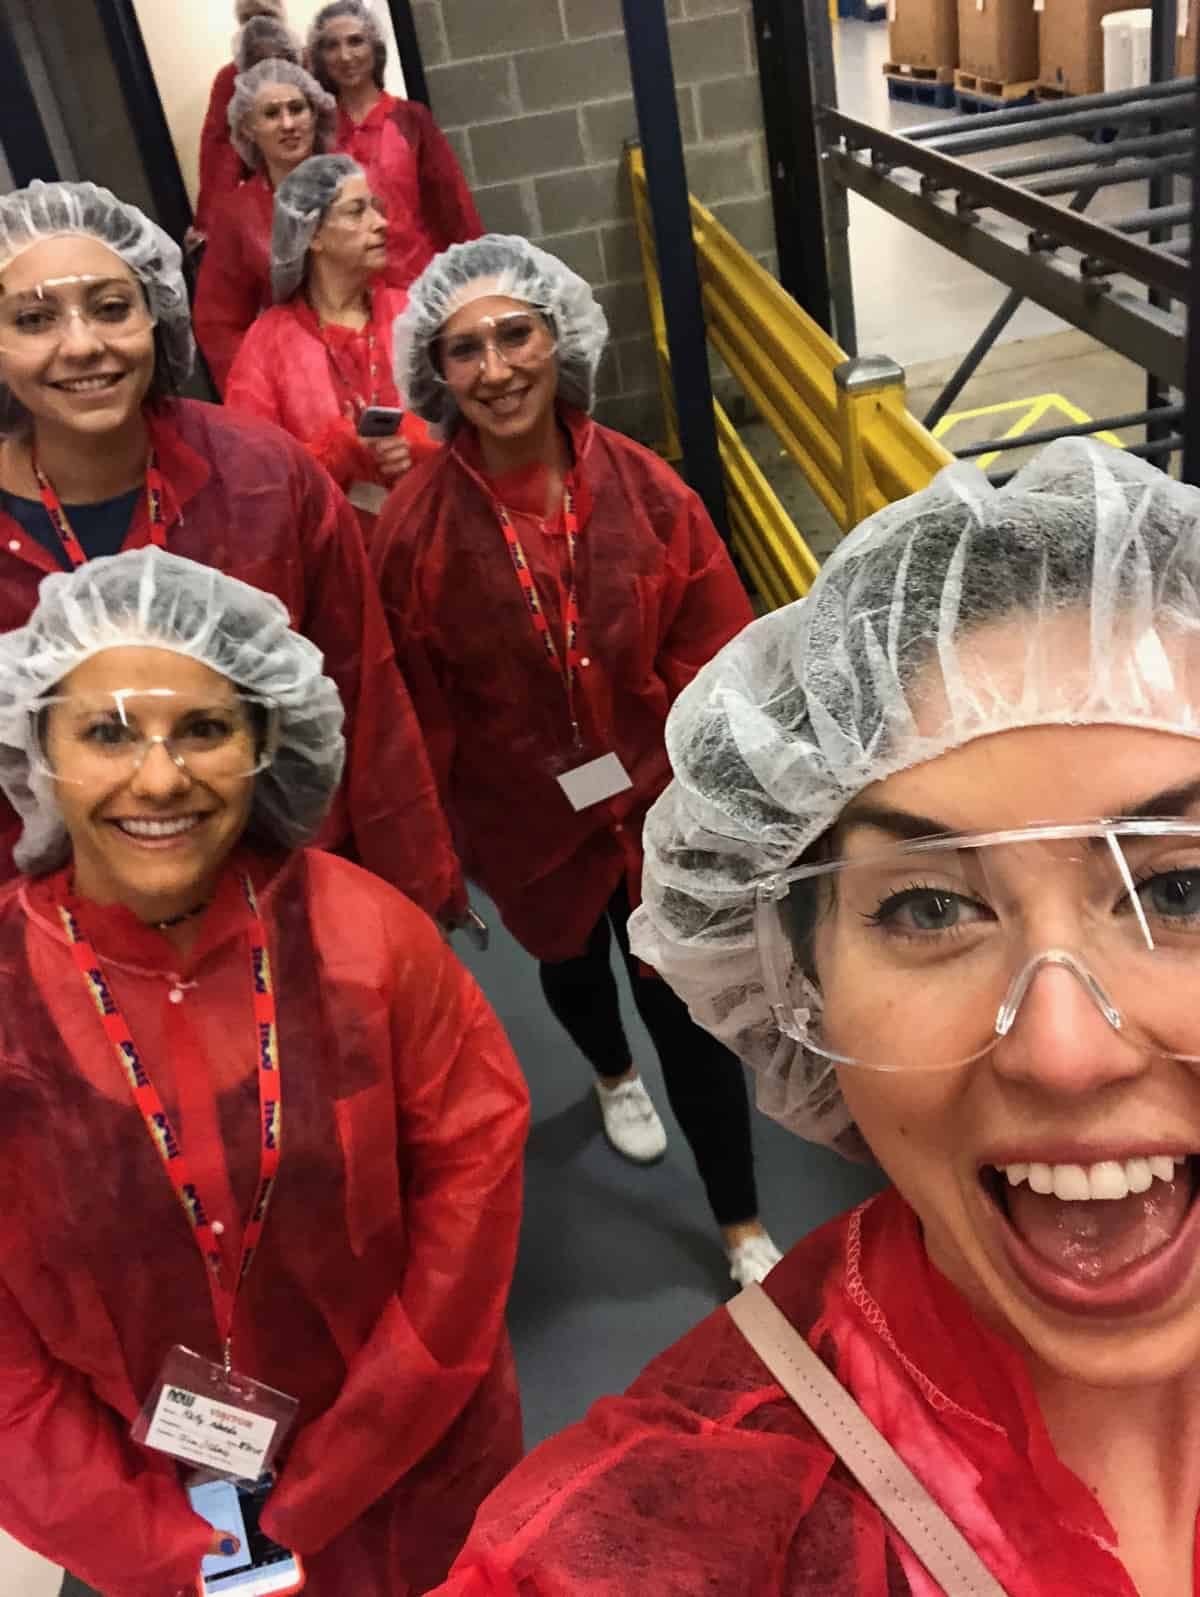 Group of girls inside the factory of a natural foods company in factory gear